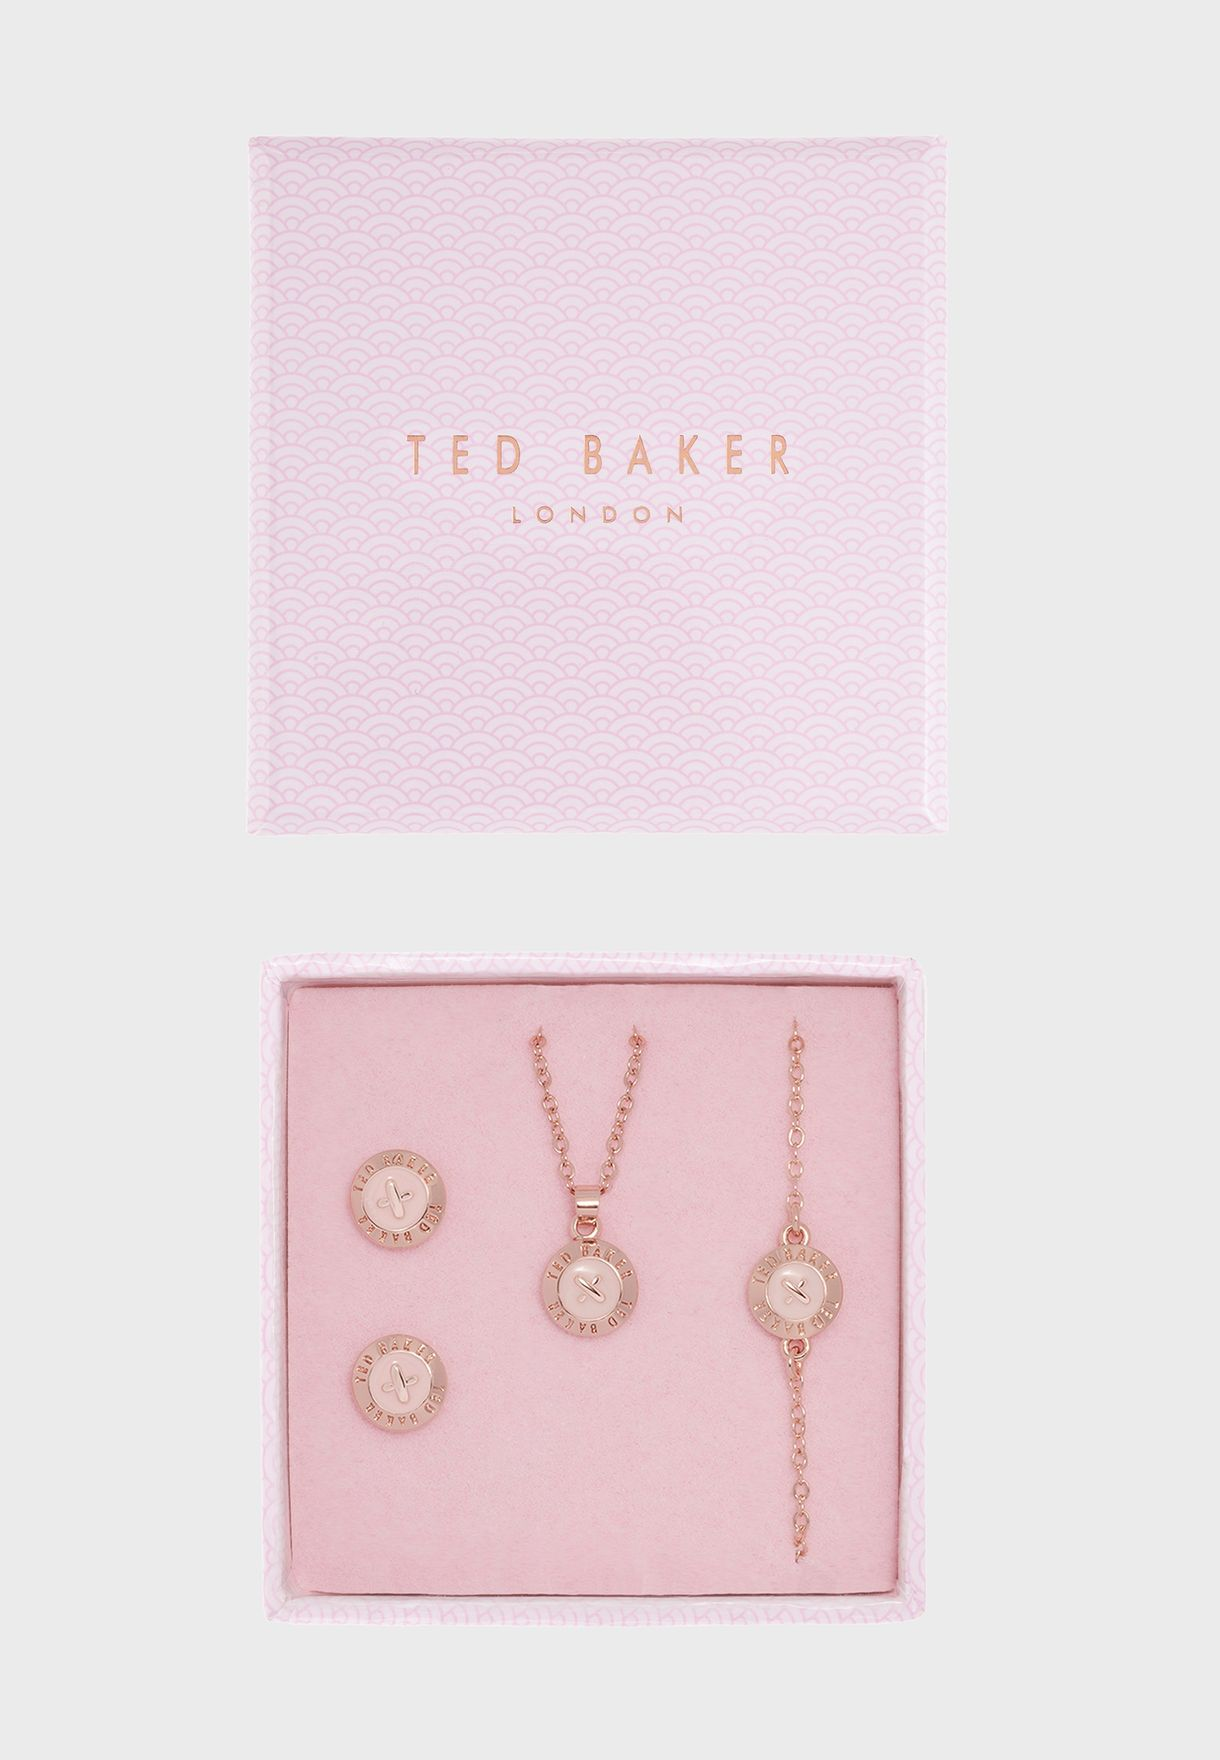 Pendant, earring and bracelet Black Friday exclusive